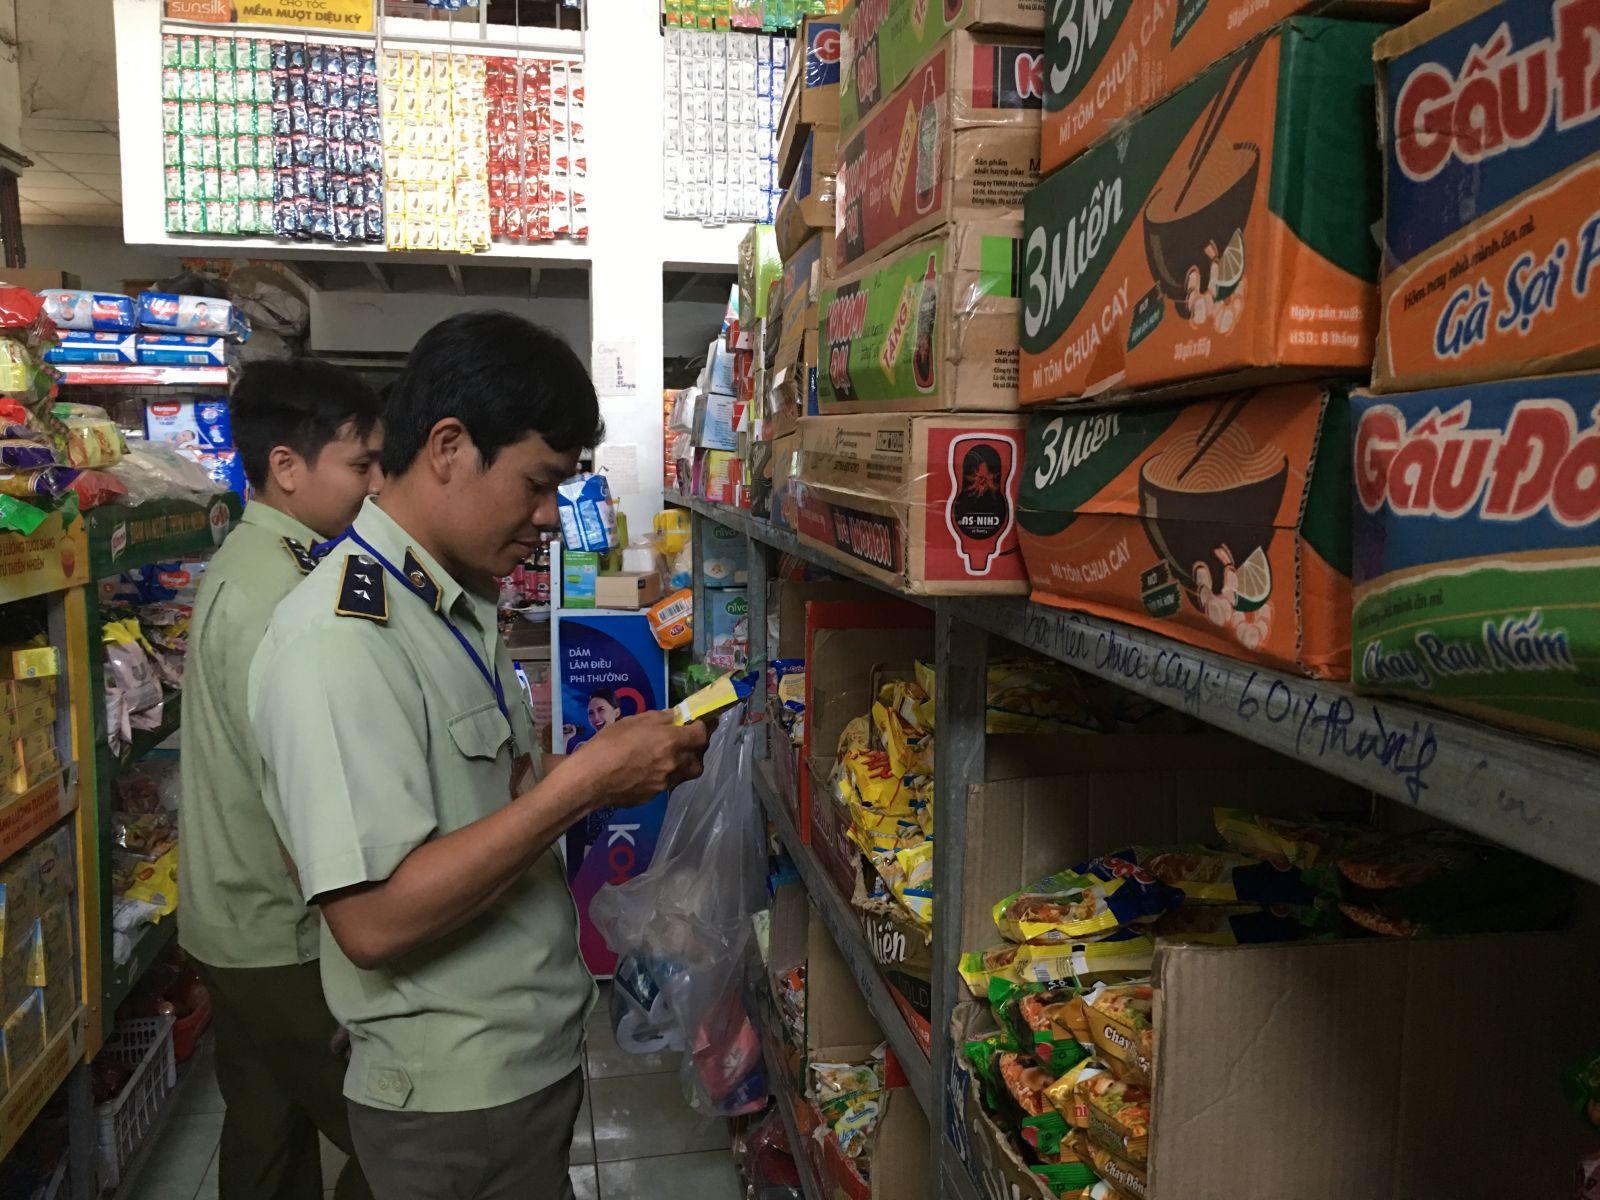 The essential commodities, which have great consuming demand in the end of the year will be checked and controlled by Market Surveillance Teams.